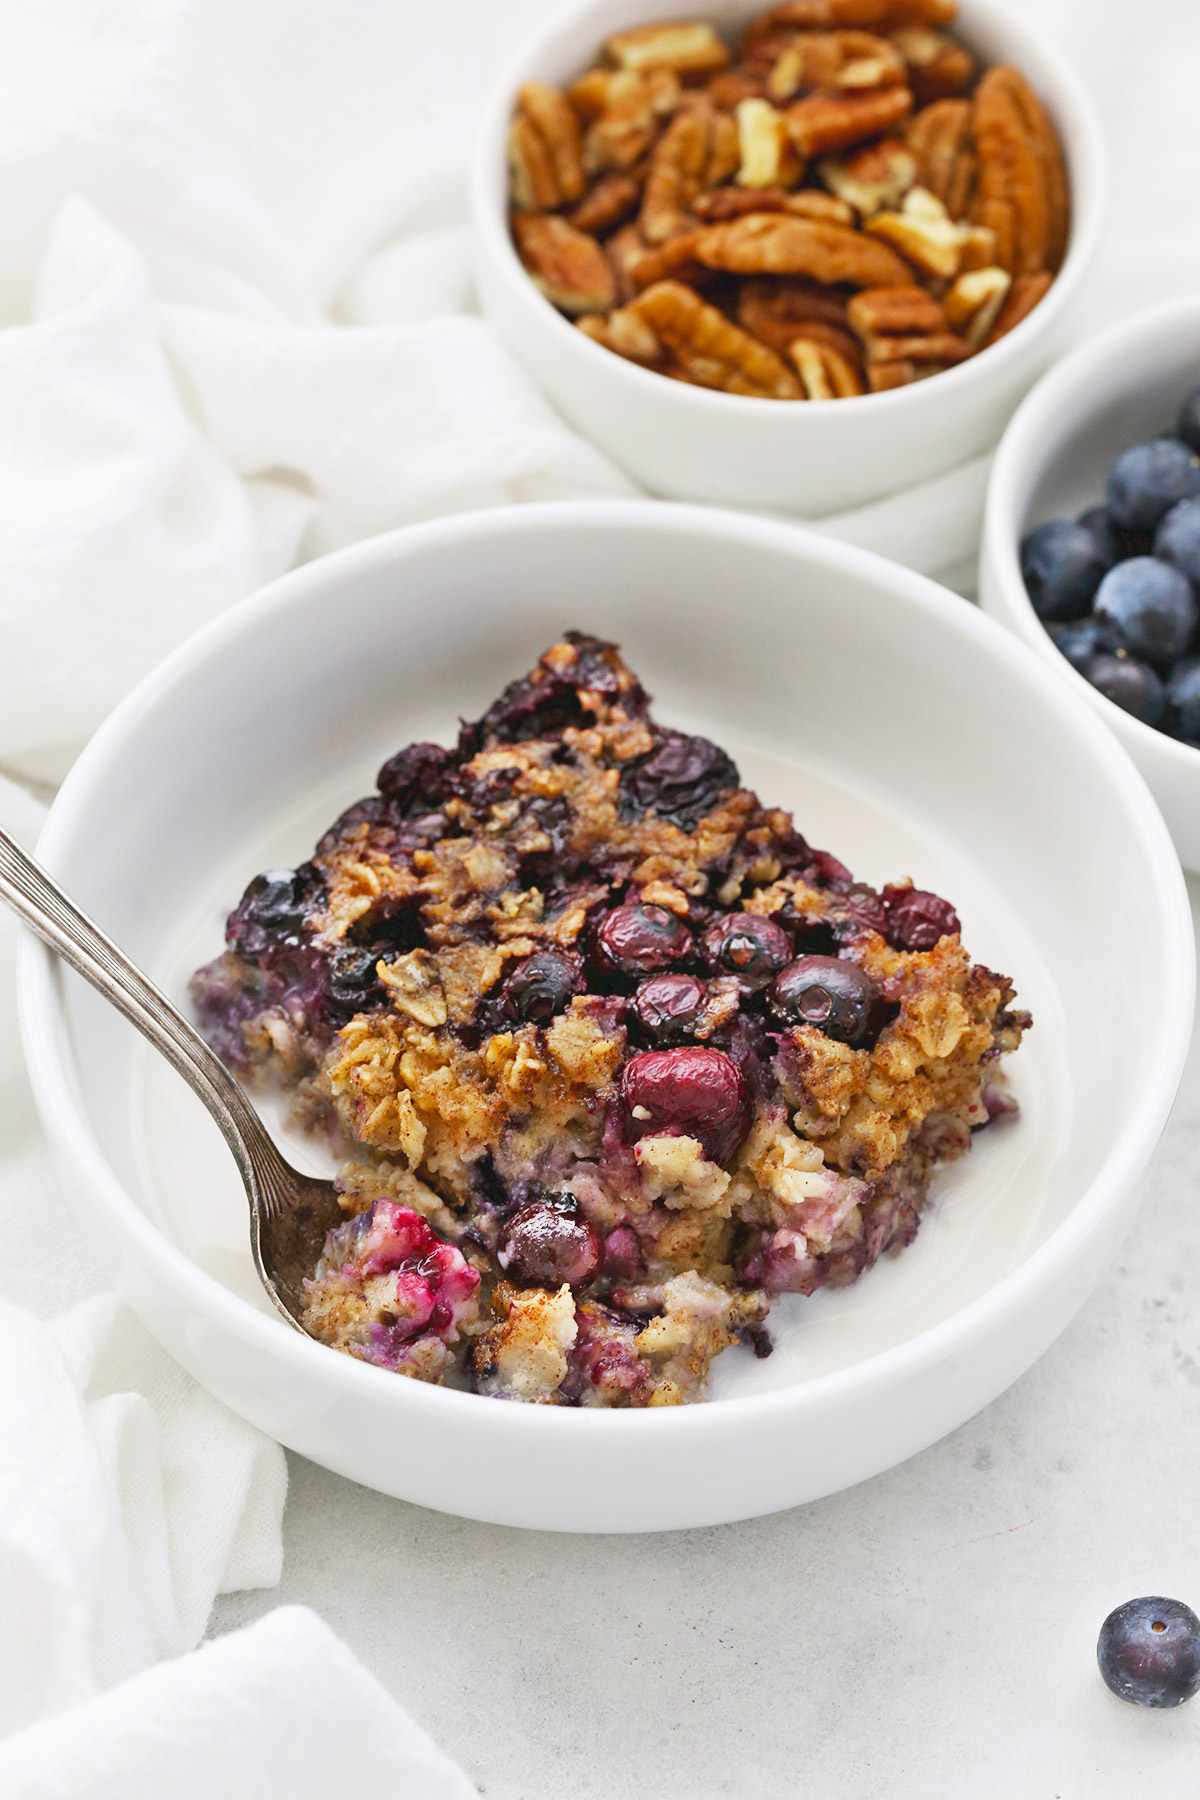 Front view of blueberry baked oatmeal with almond milk